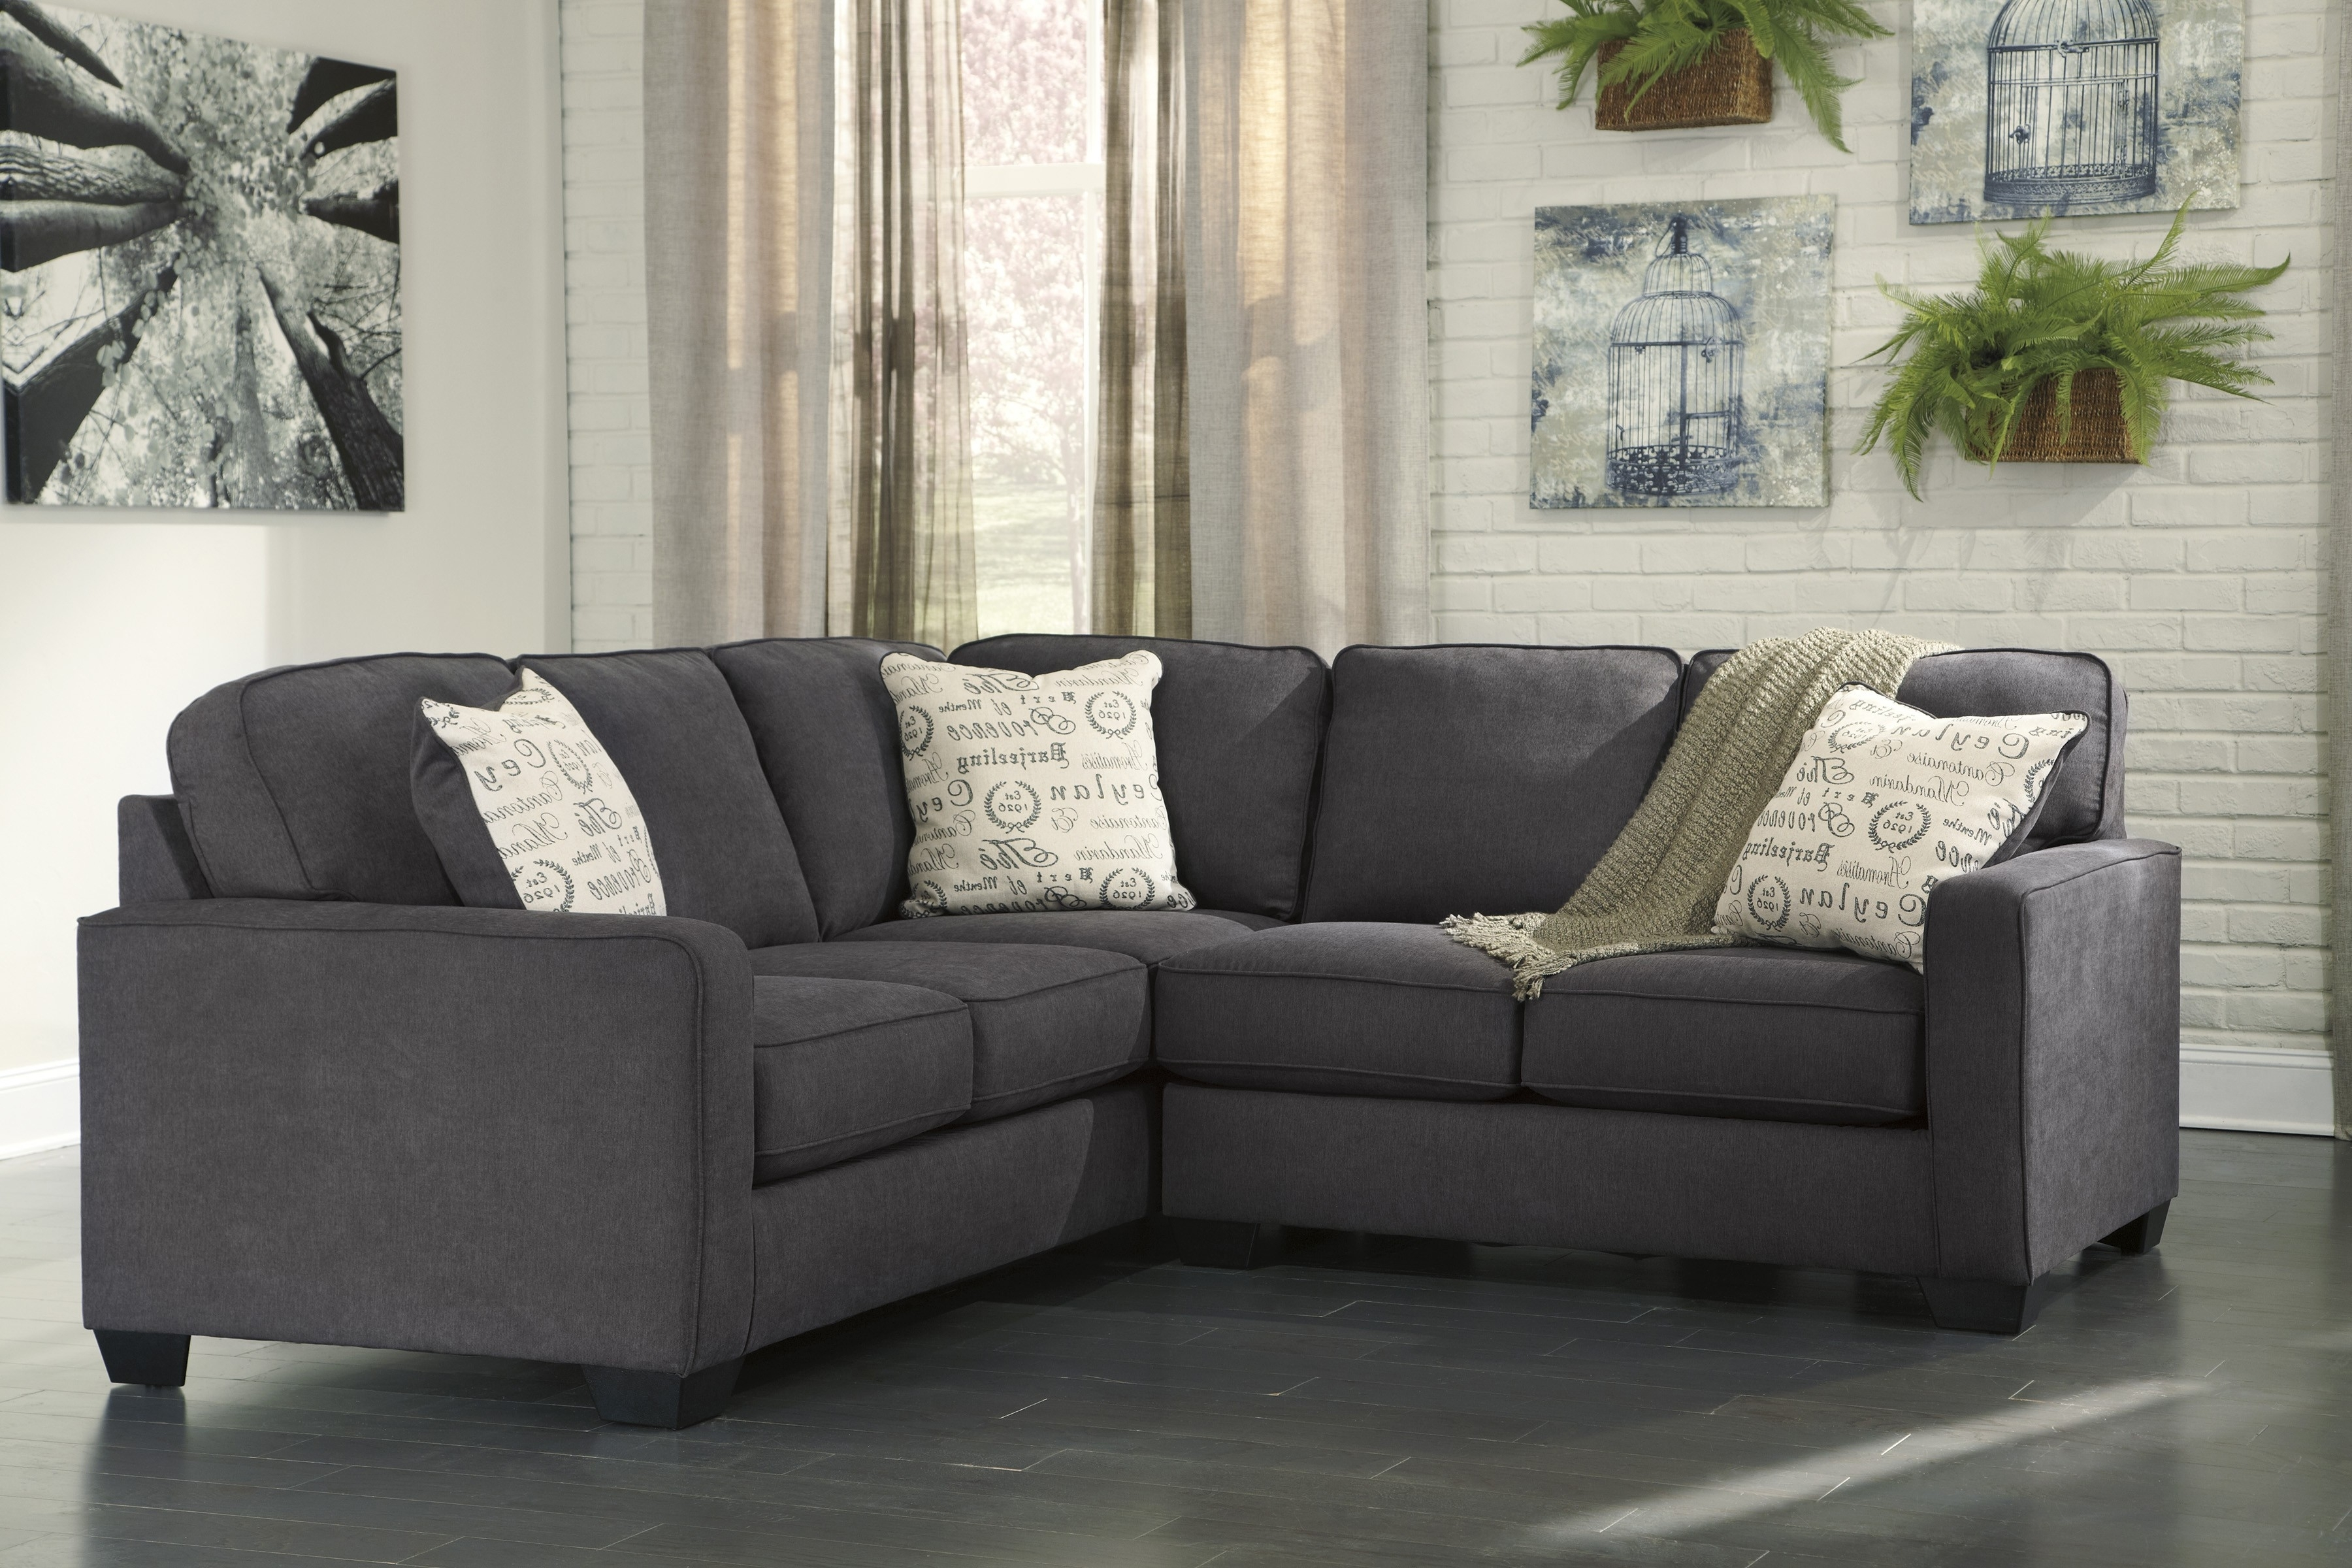 Alenya Charcoal Piece Sectional Sofa For Furnitureusa Raf Love Tures Regarding Aspen 2 Piece Sleeper Sectionals With Raf Chaise (Image 1 of 25)